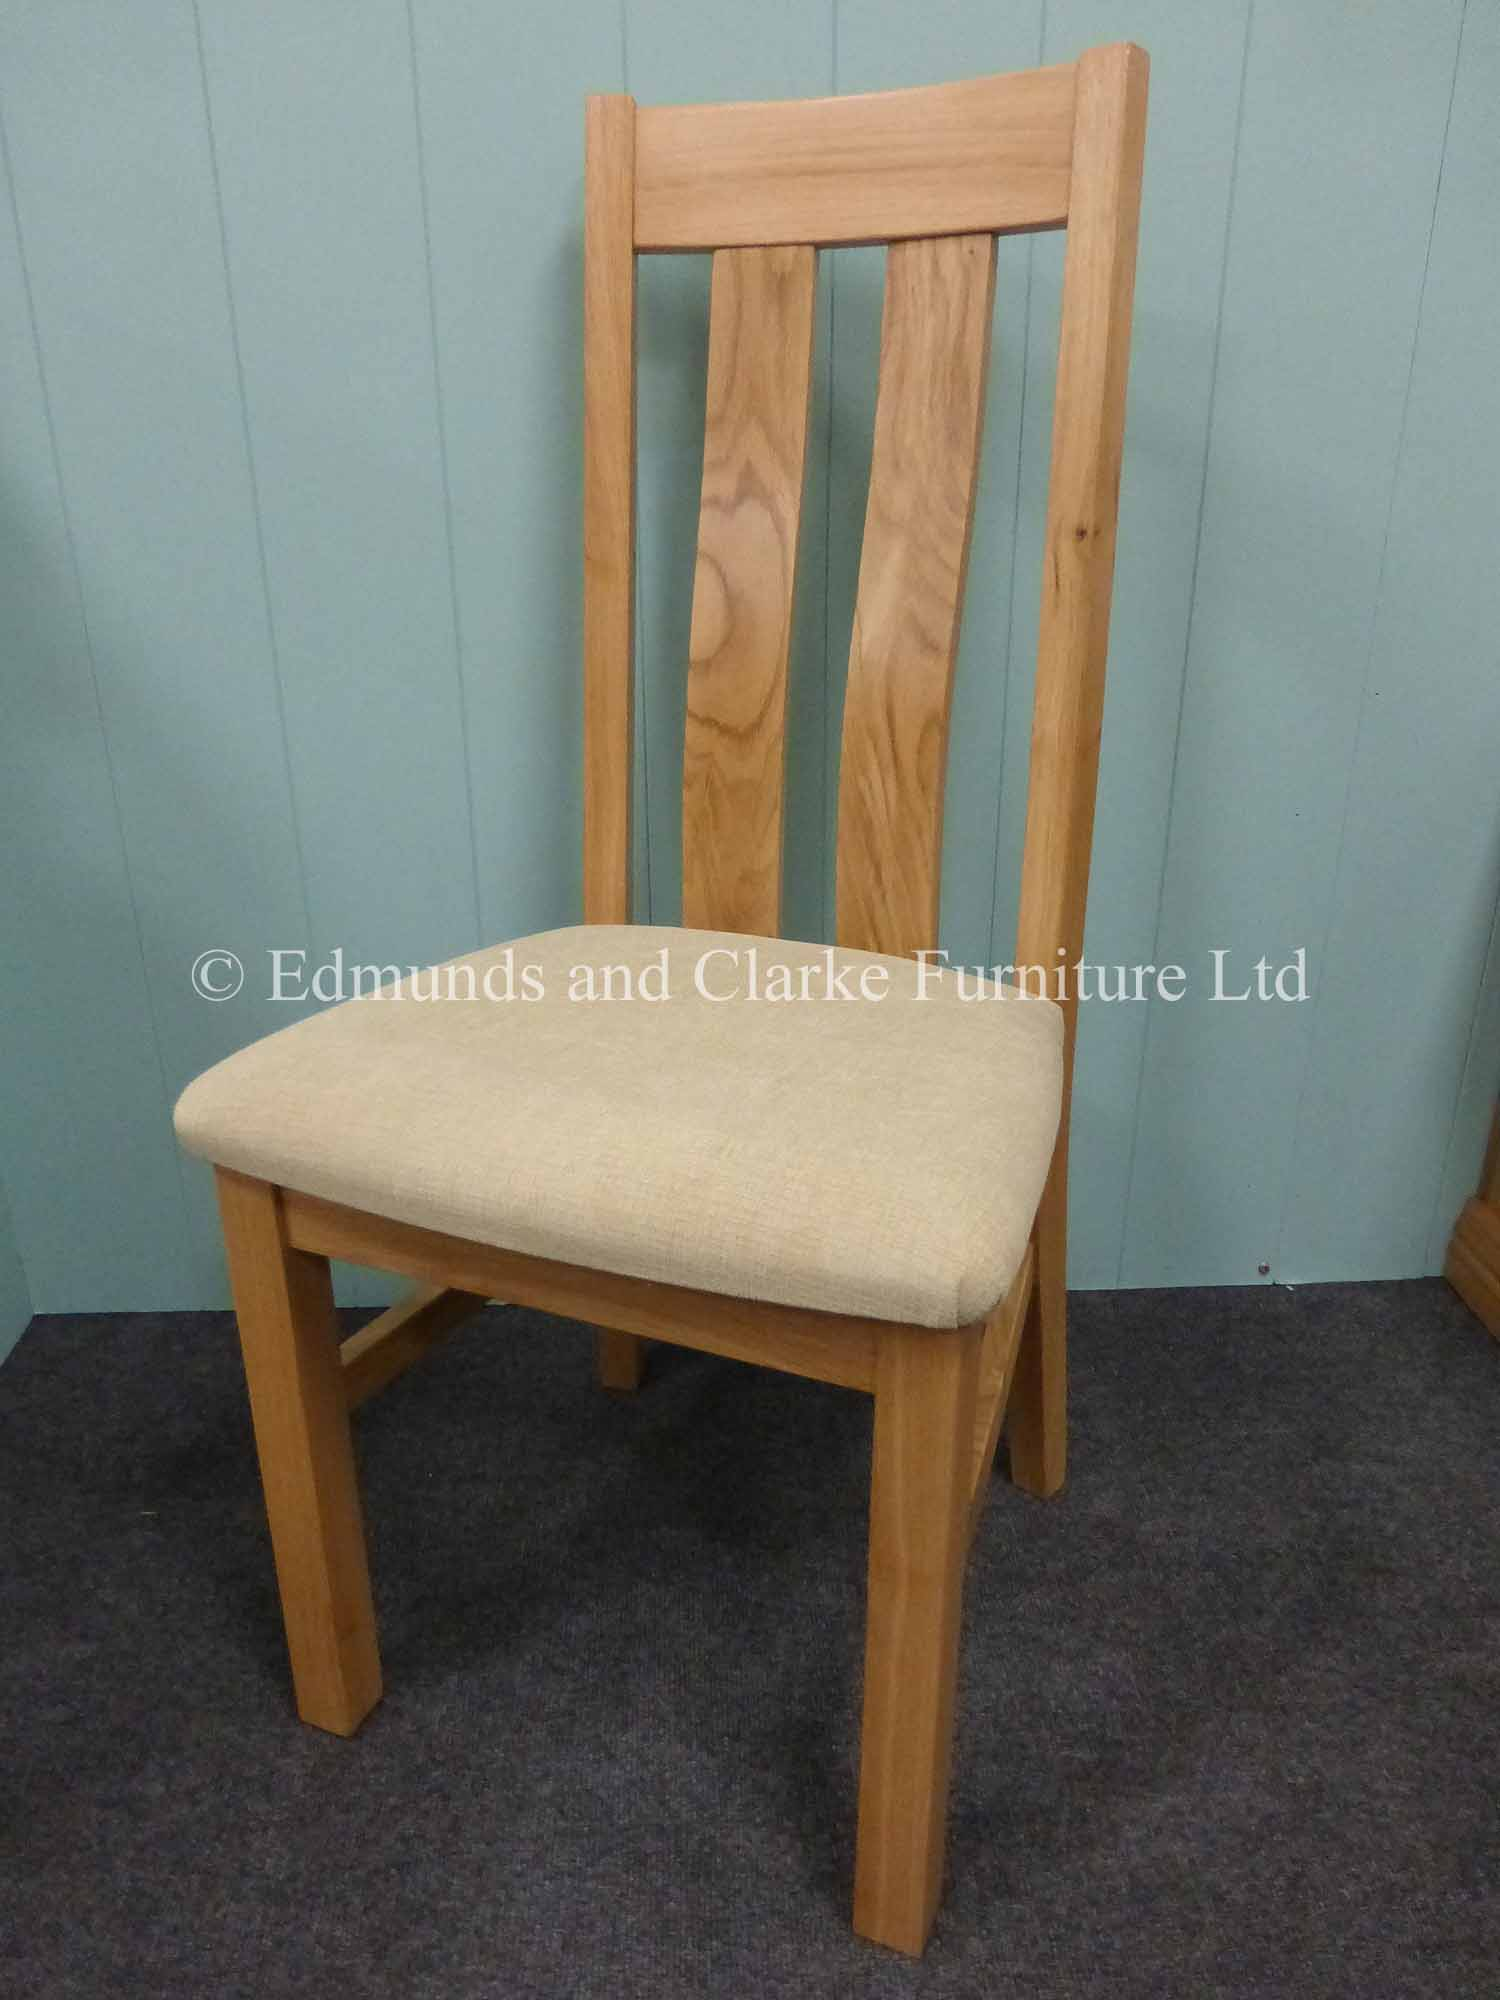 harris oak dining chair with fabric seat options